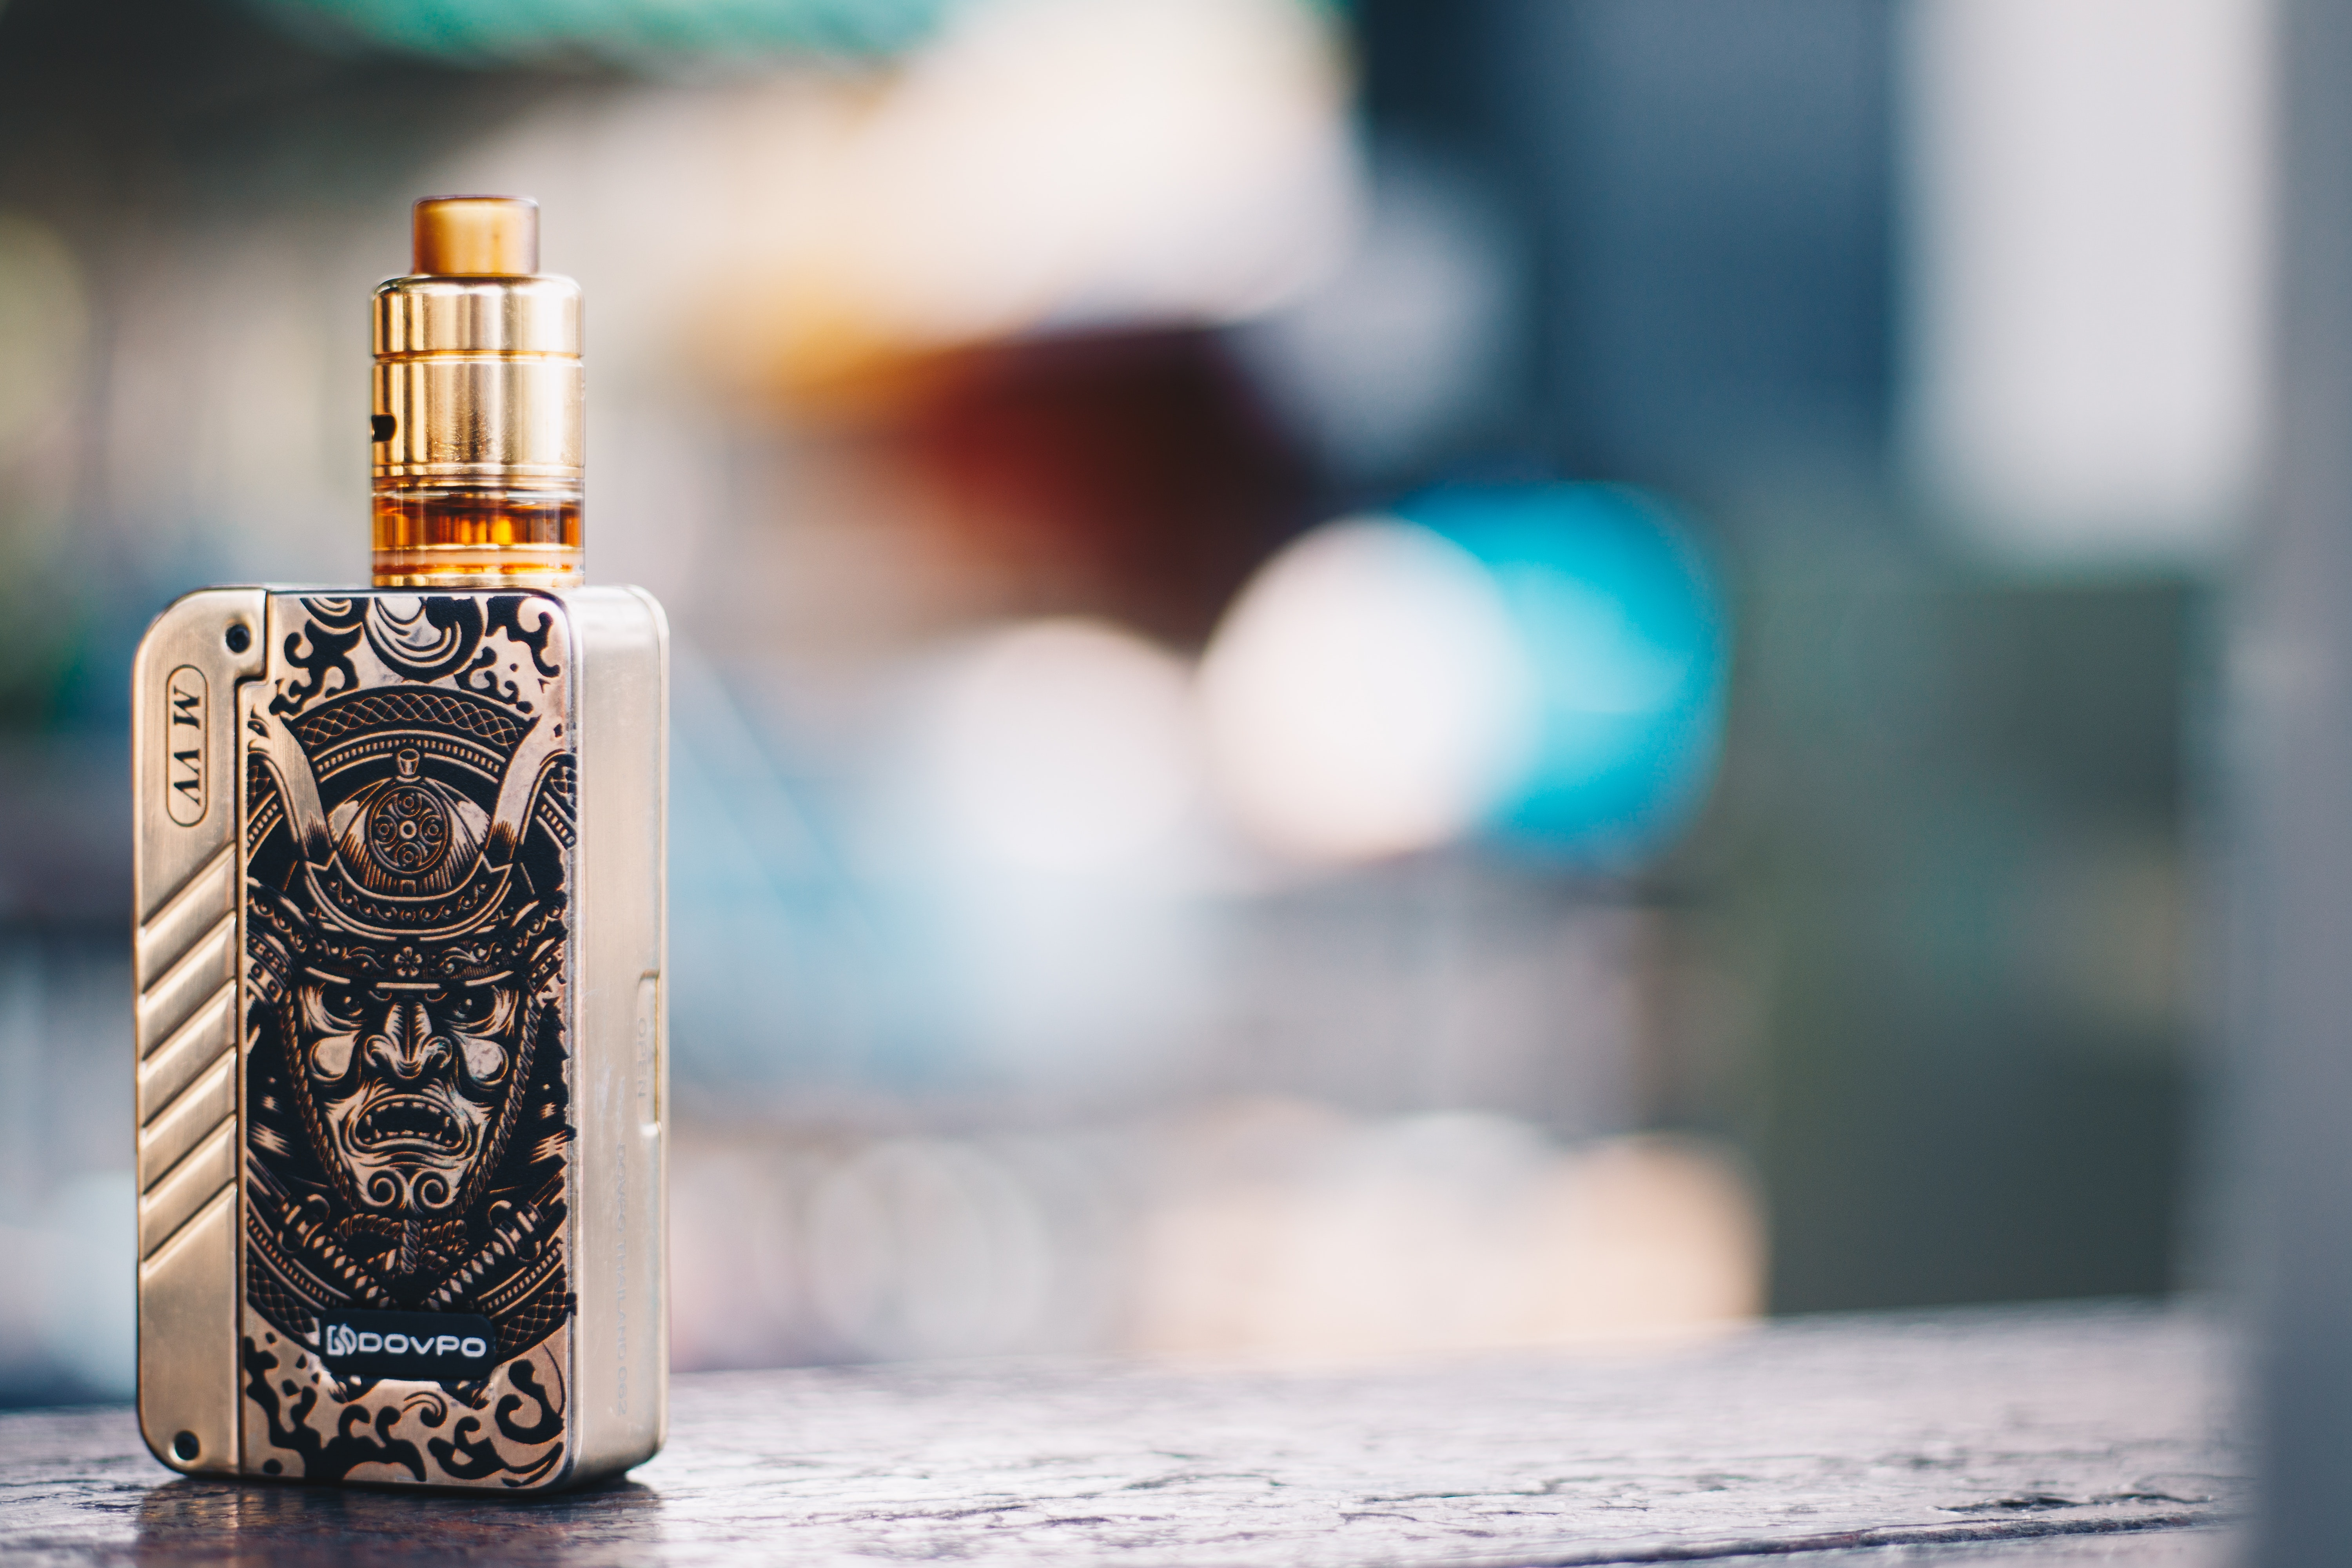 Vape and Tobacco Shop with Diverse Product Offerings